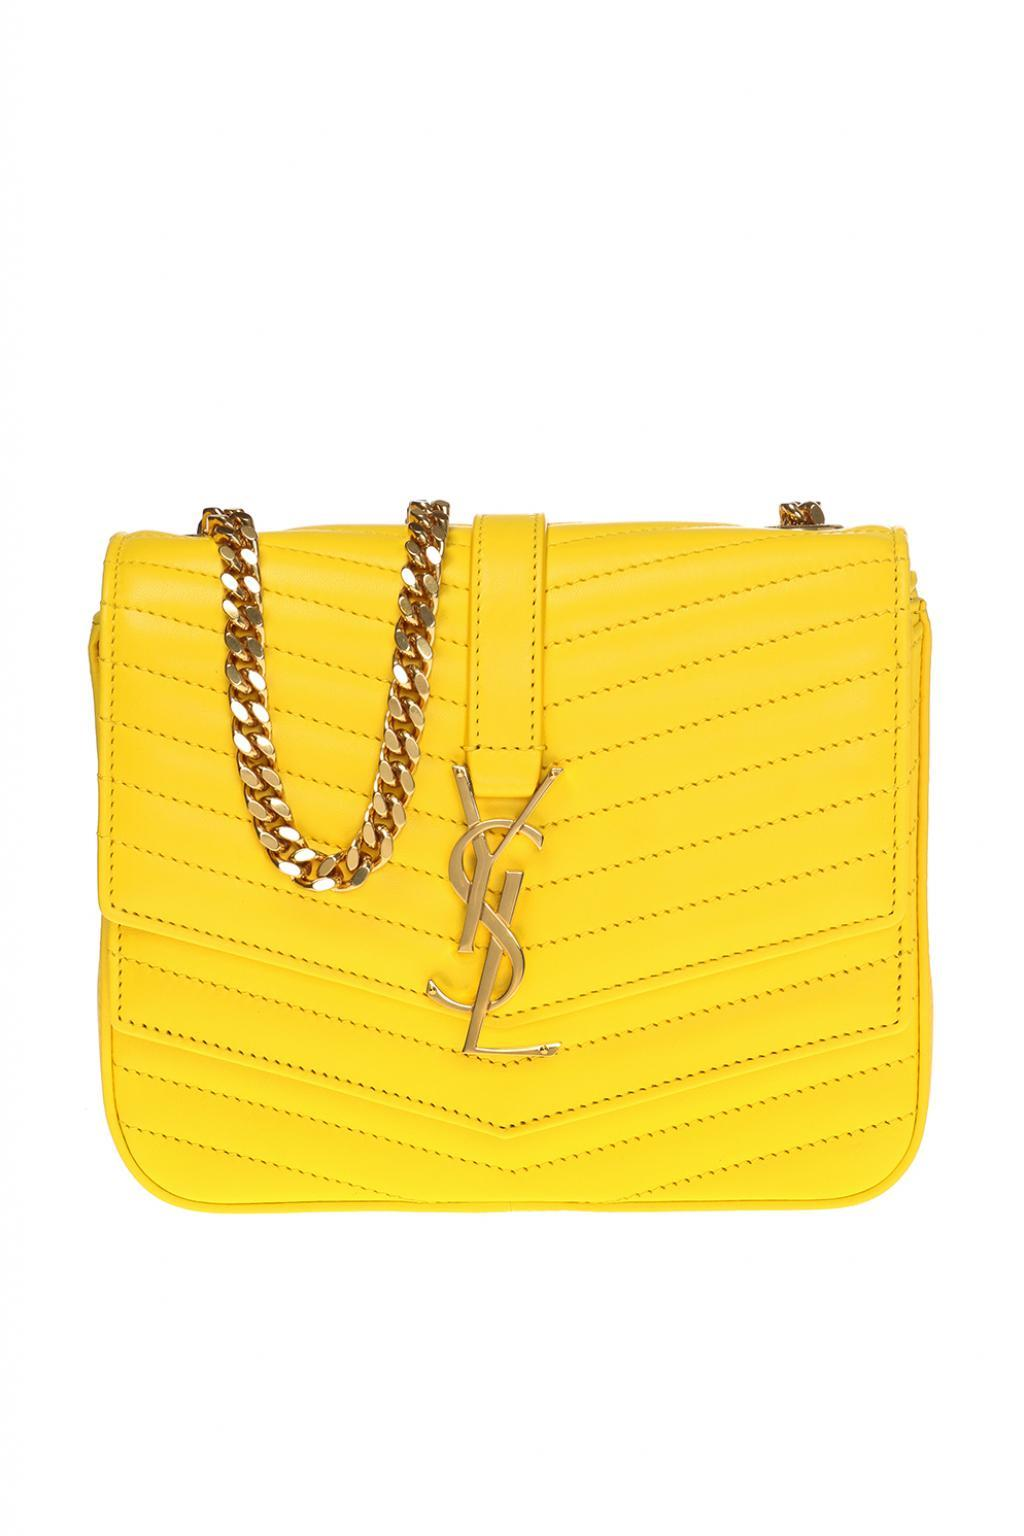 2e0b5c4fa7 Saint Laurent 'sulpice Monogram' Quilted Shoulder Bag in Yellow - Lyst